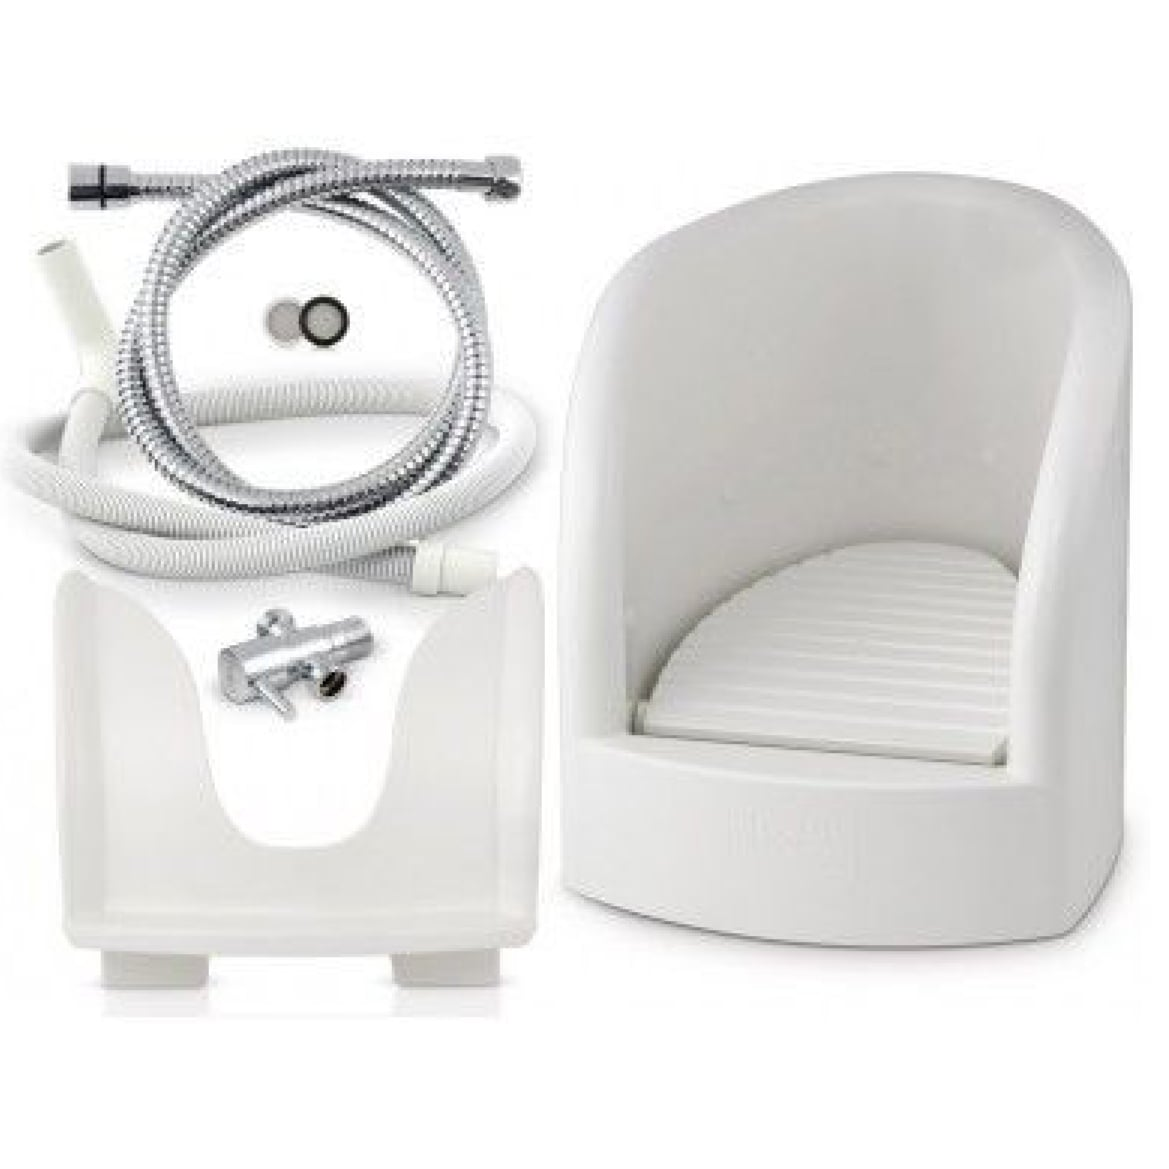 Foot Washer - Click for for Info